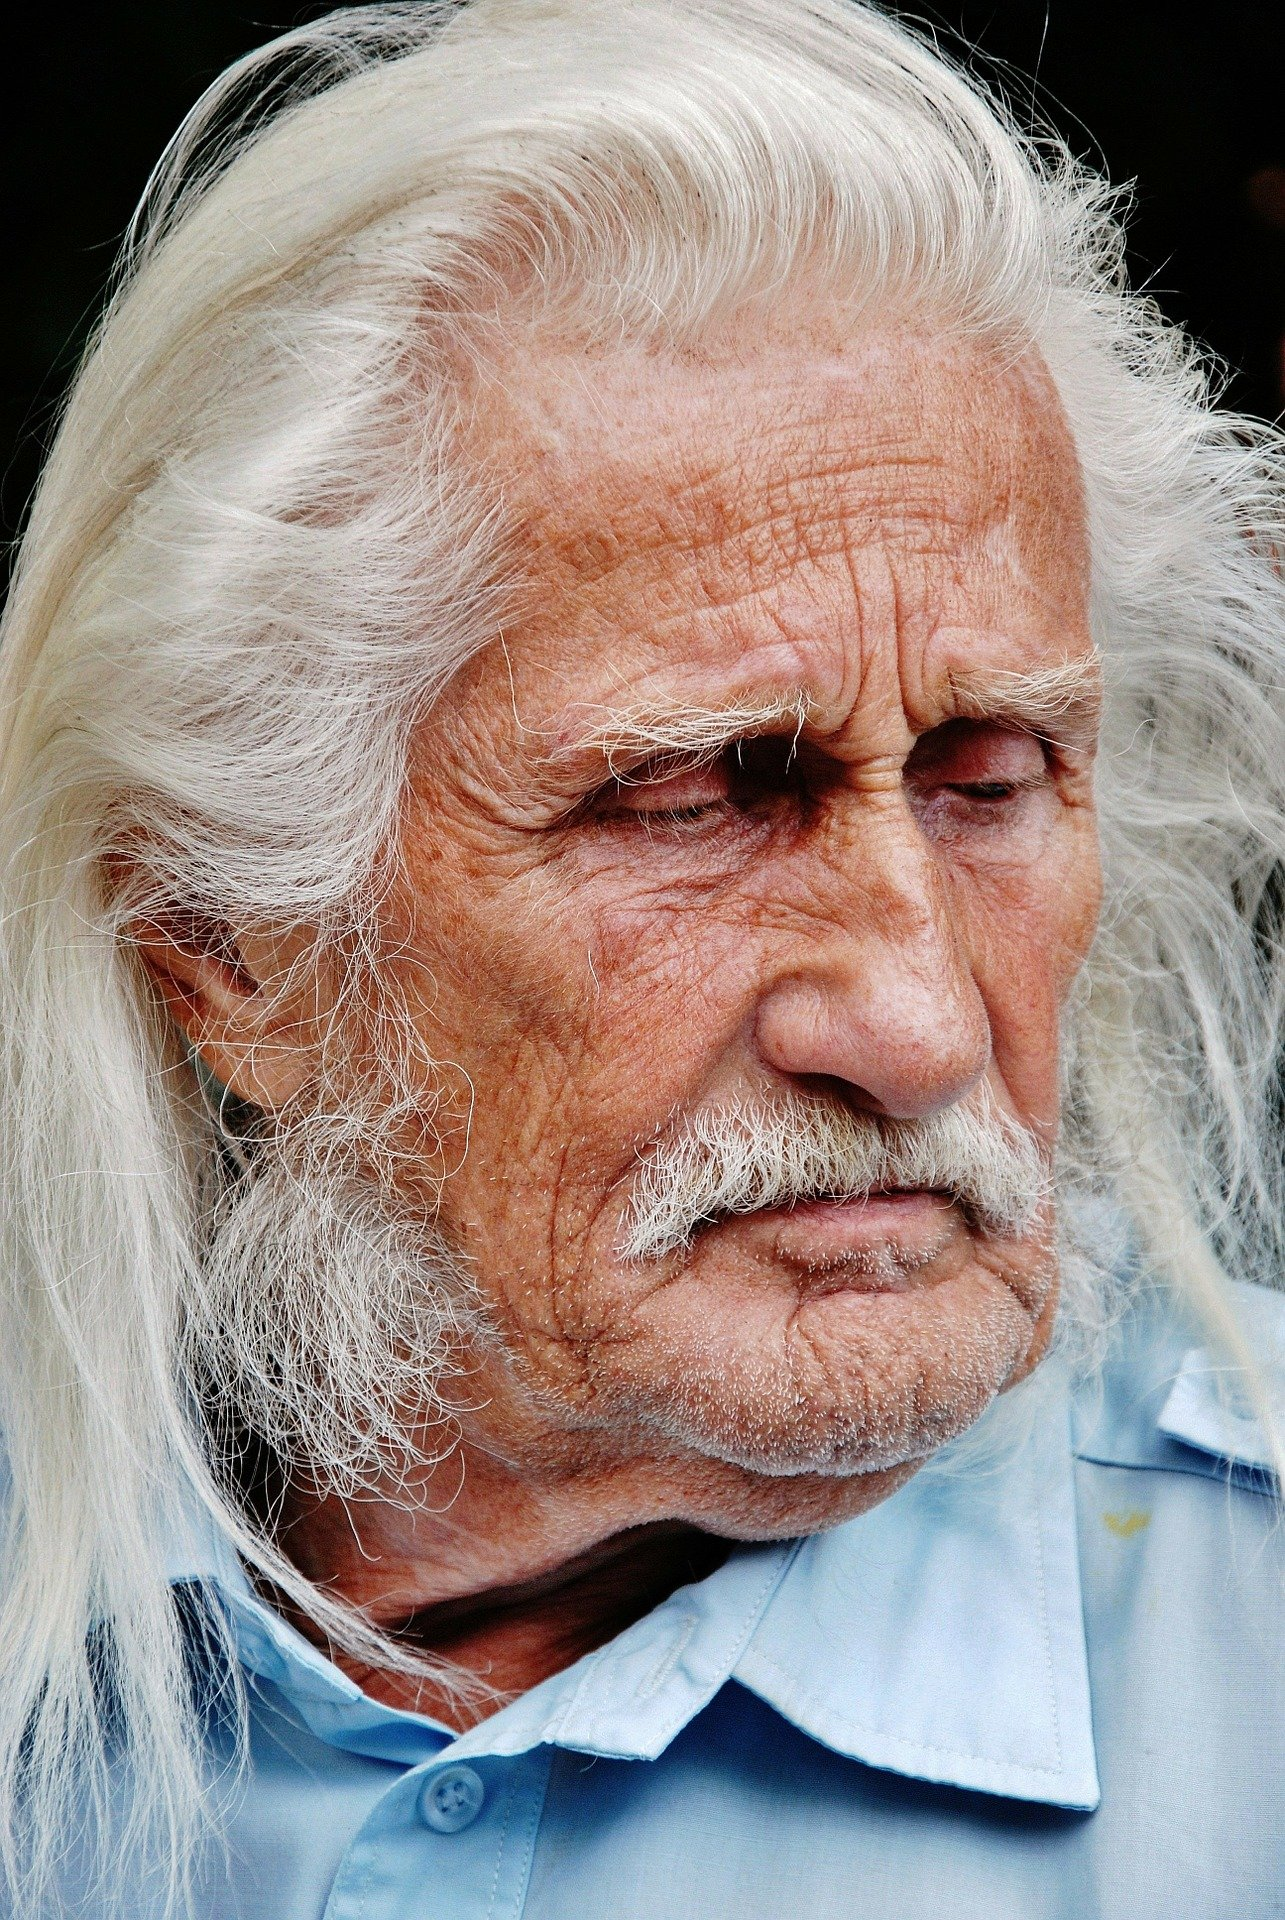 An old man with a sad expression on his face   Photo: Pixabay/GLady